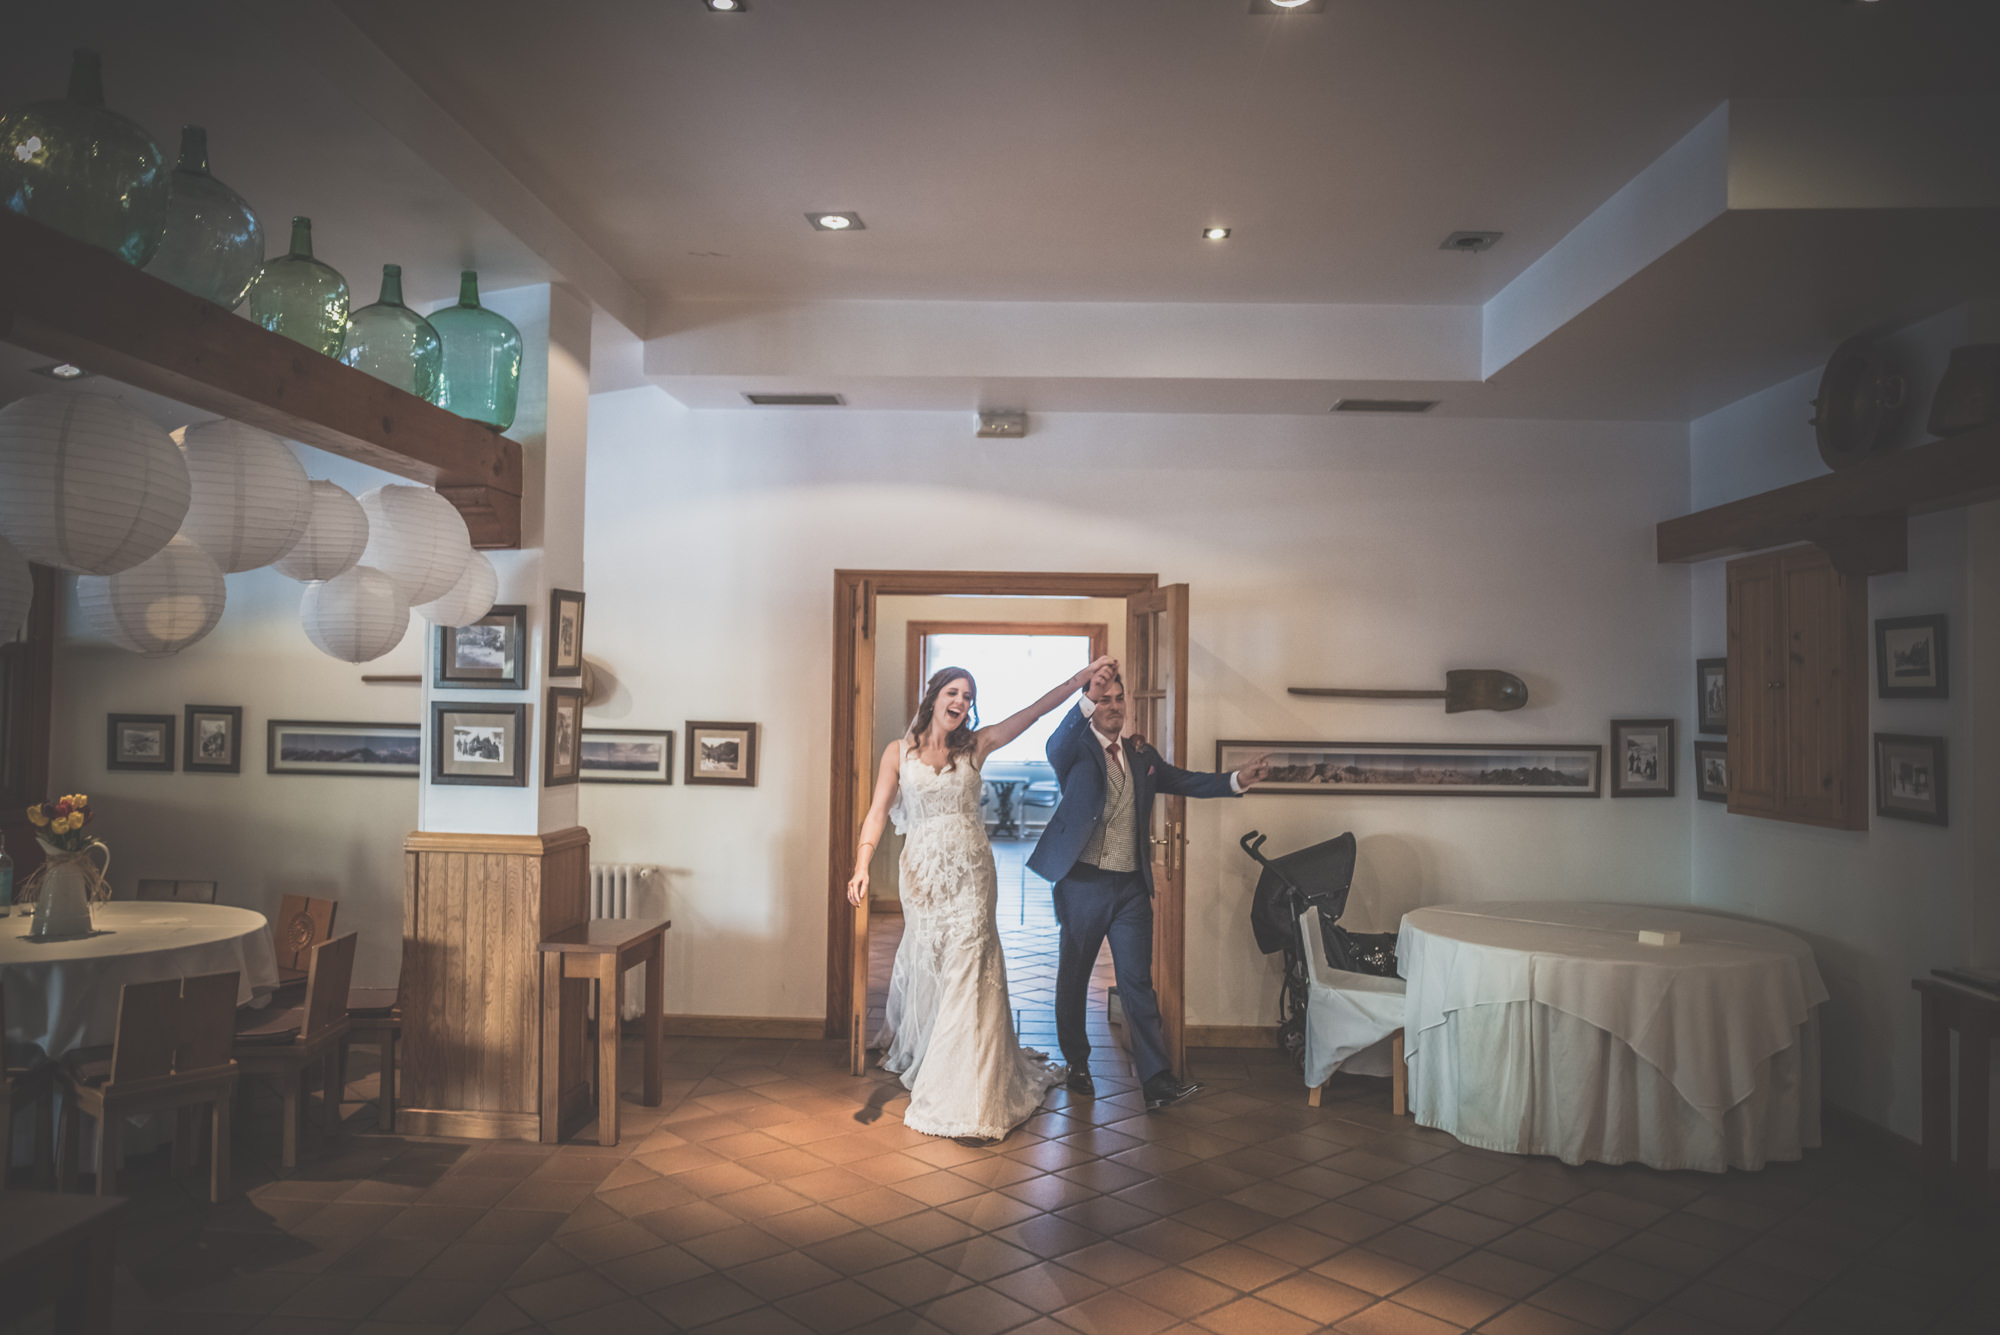 Amy-and-Andres-destination-wedding-in-Potes-Spain-Manu-Mendoza-Wedding-Photography-476.jpg